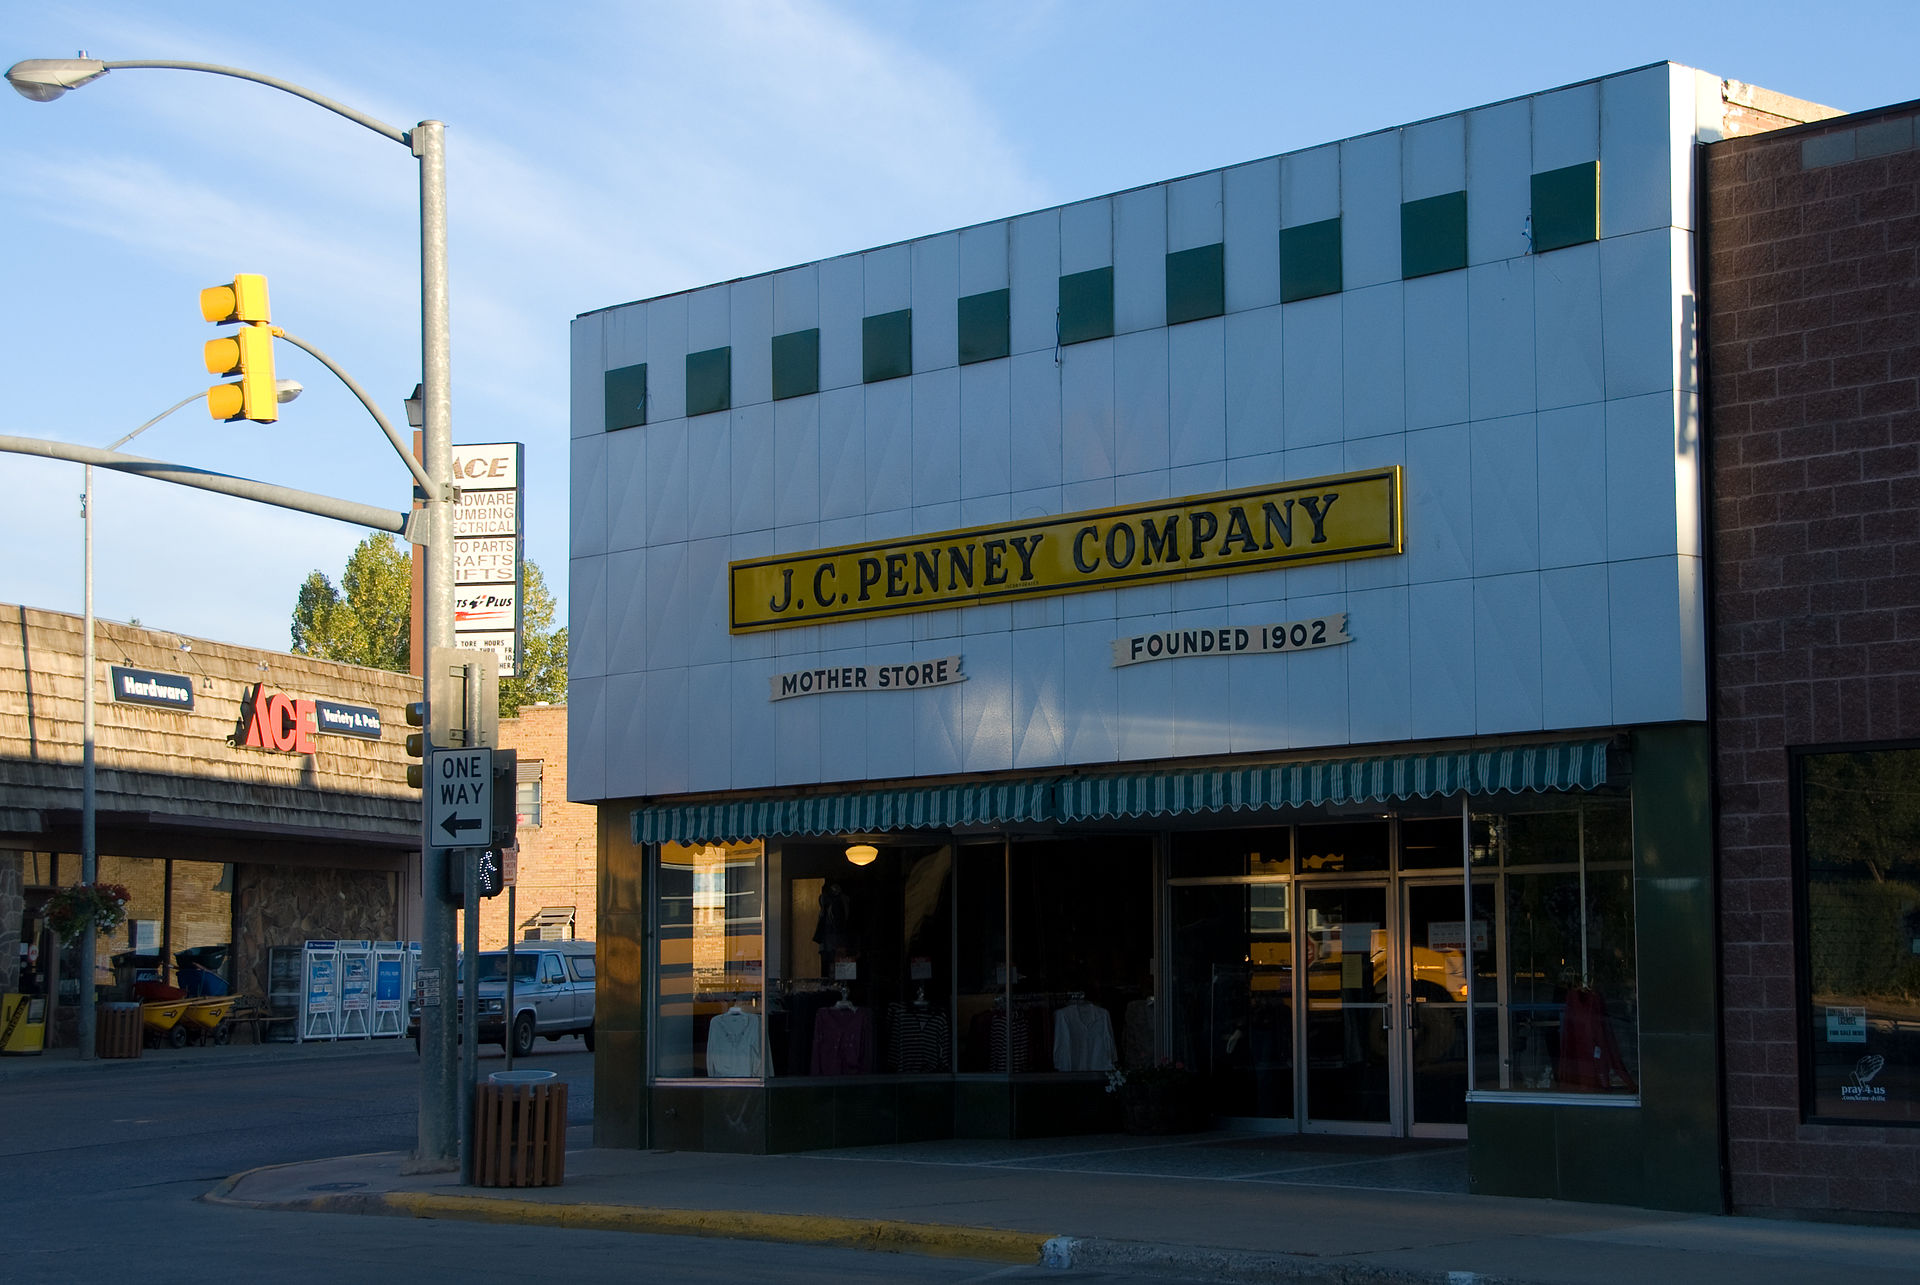 JC Penney Mother Store in Kemmerer, Wyoming.